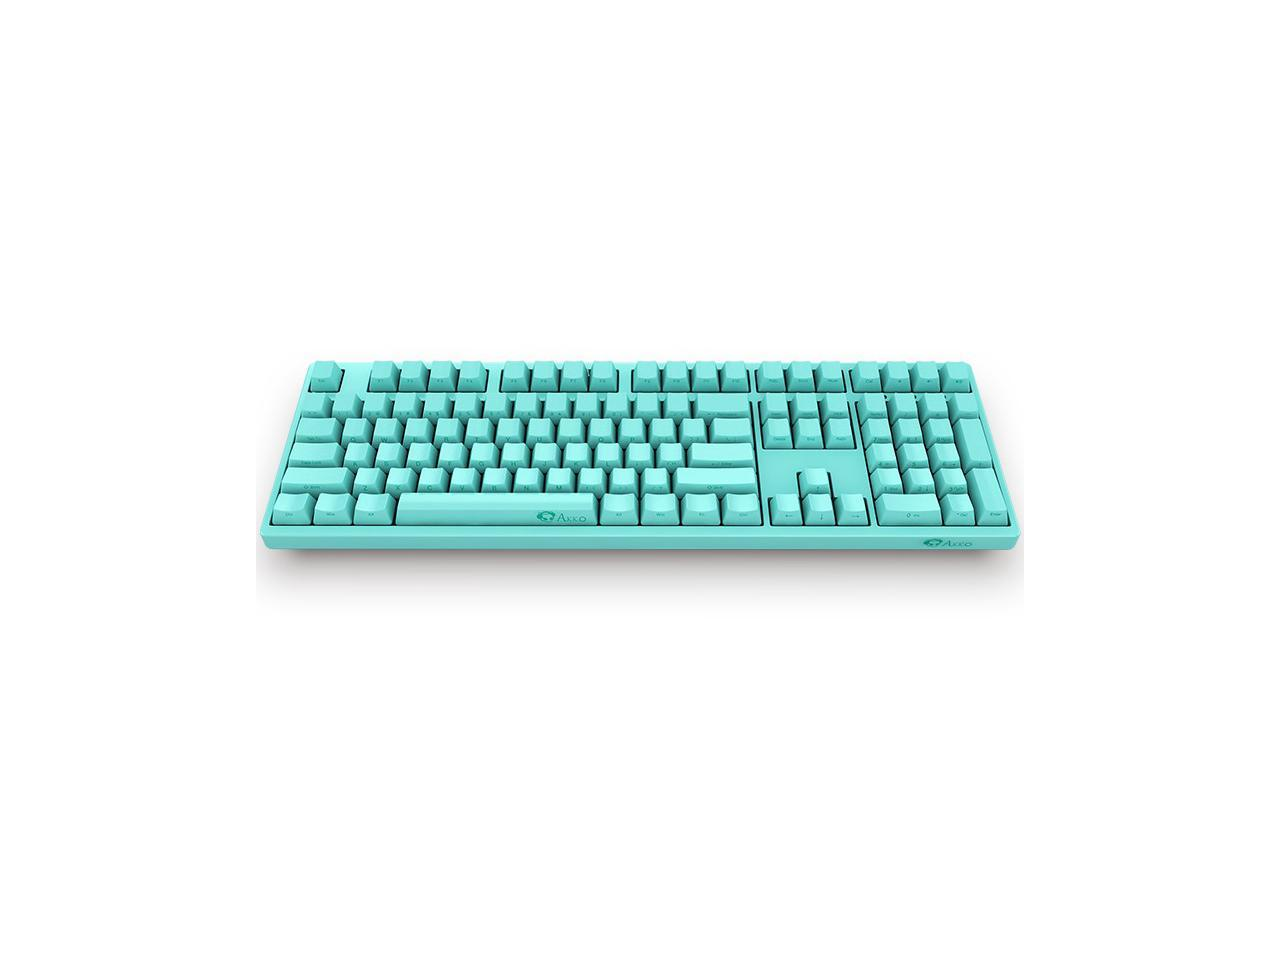 Akko 3108 Full Size Robin Egg Blue Gaming Mechanical Keyboard Cherry Mx Black Switch Double Shot Dye Sub Pbt Keycaps Nkro Detachable Usb Type C Wired Side Printed Carved Letter Newegg Com